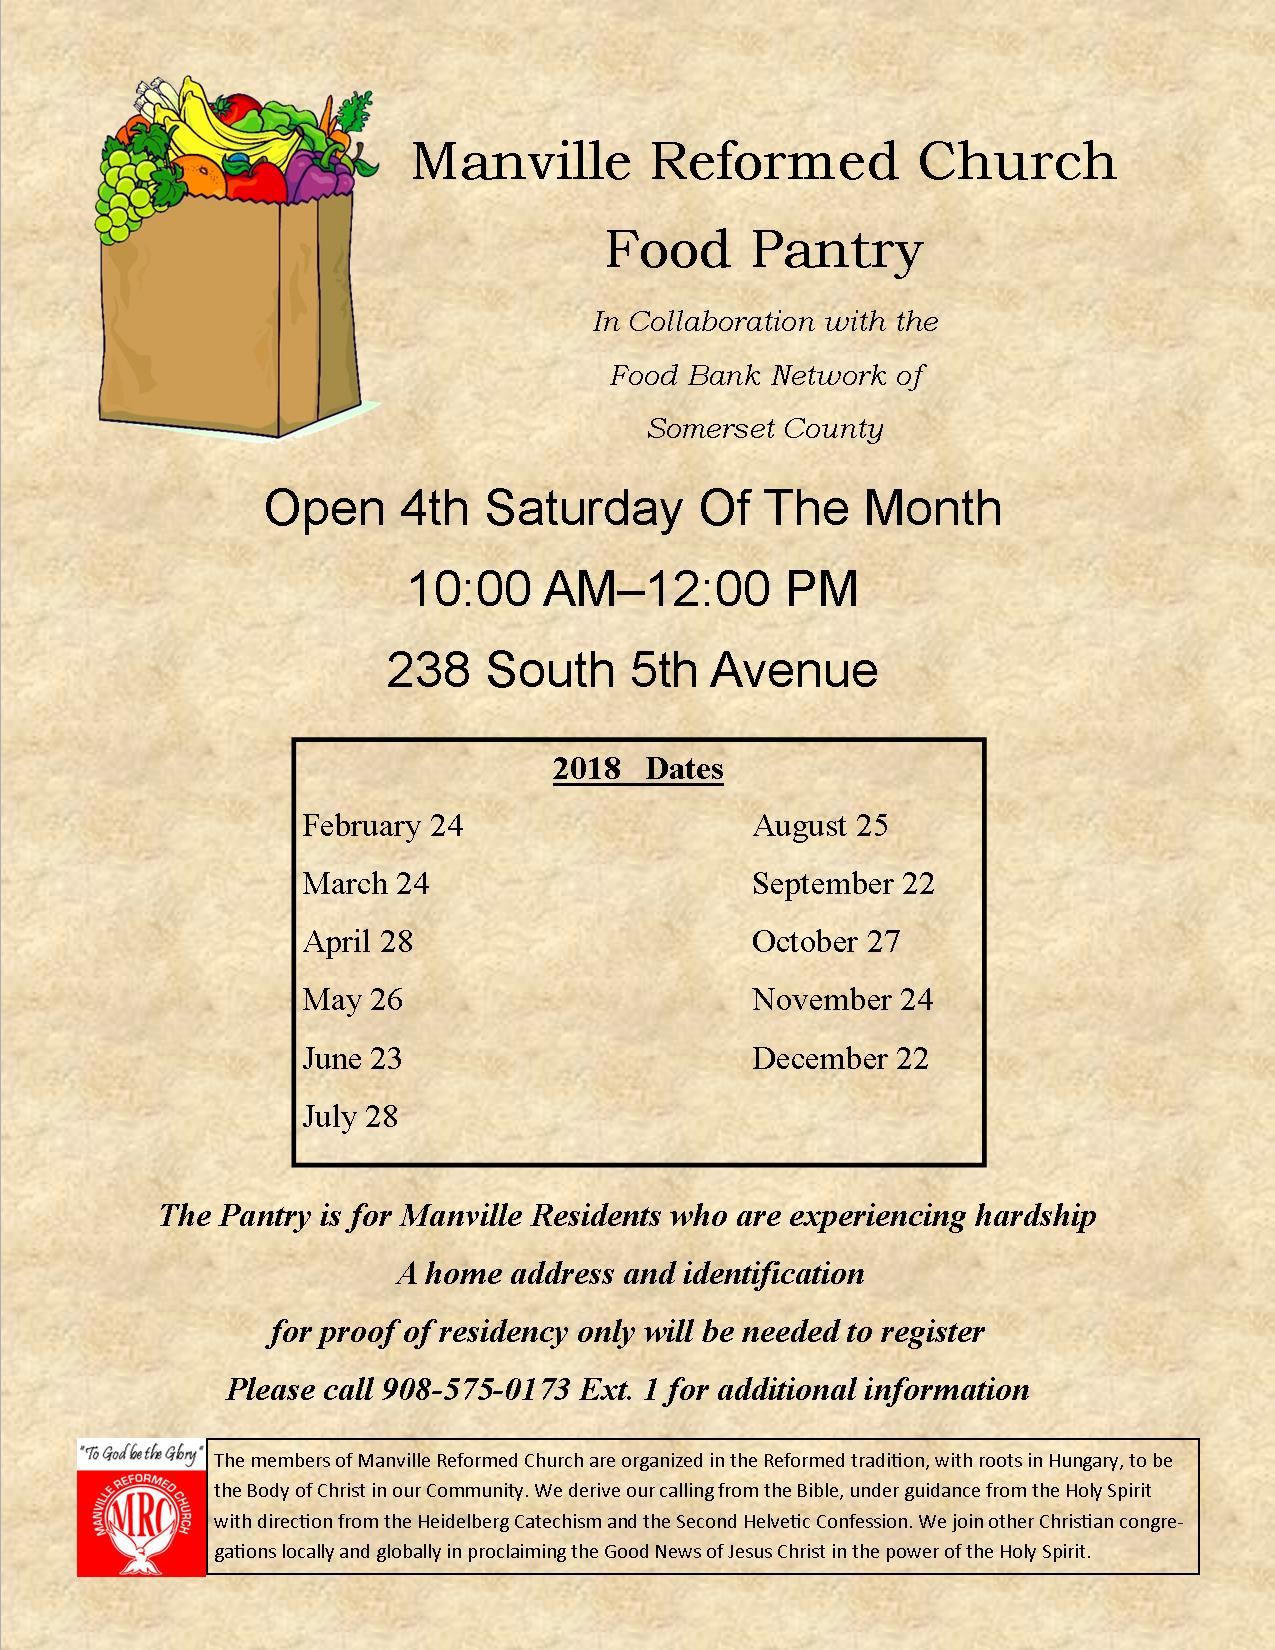 MRC food pantry dates colored  background